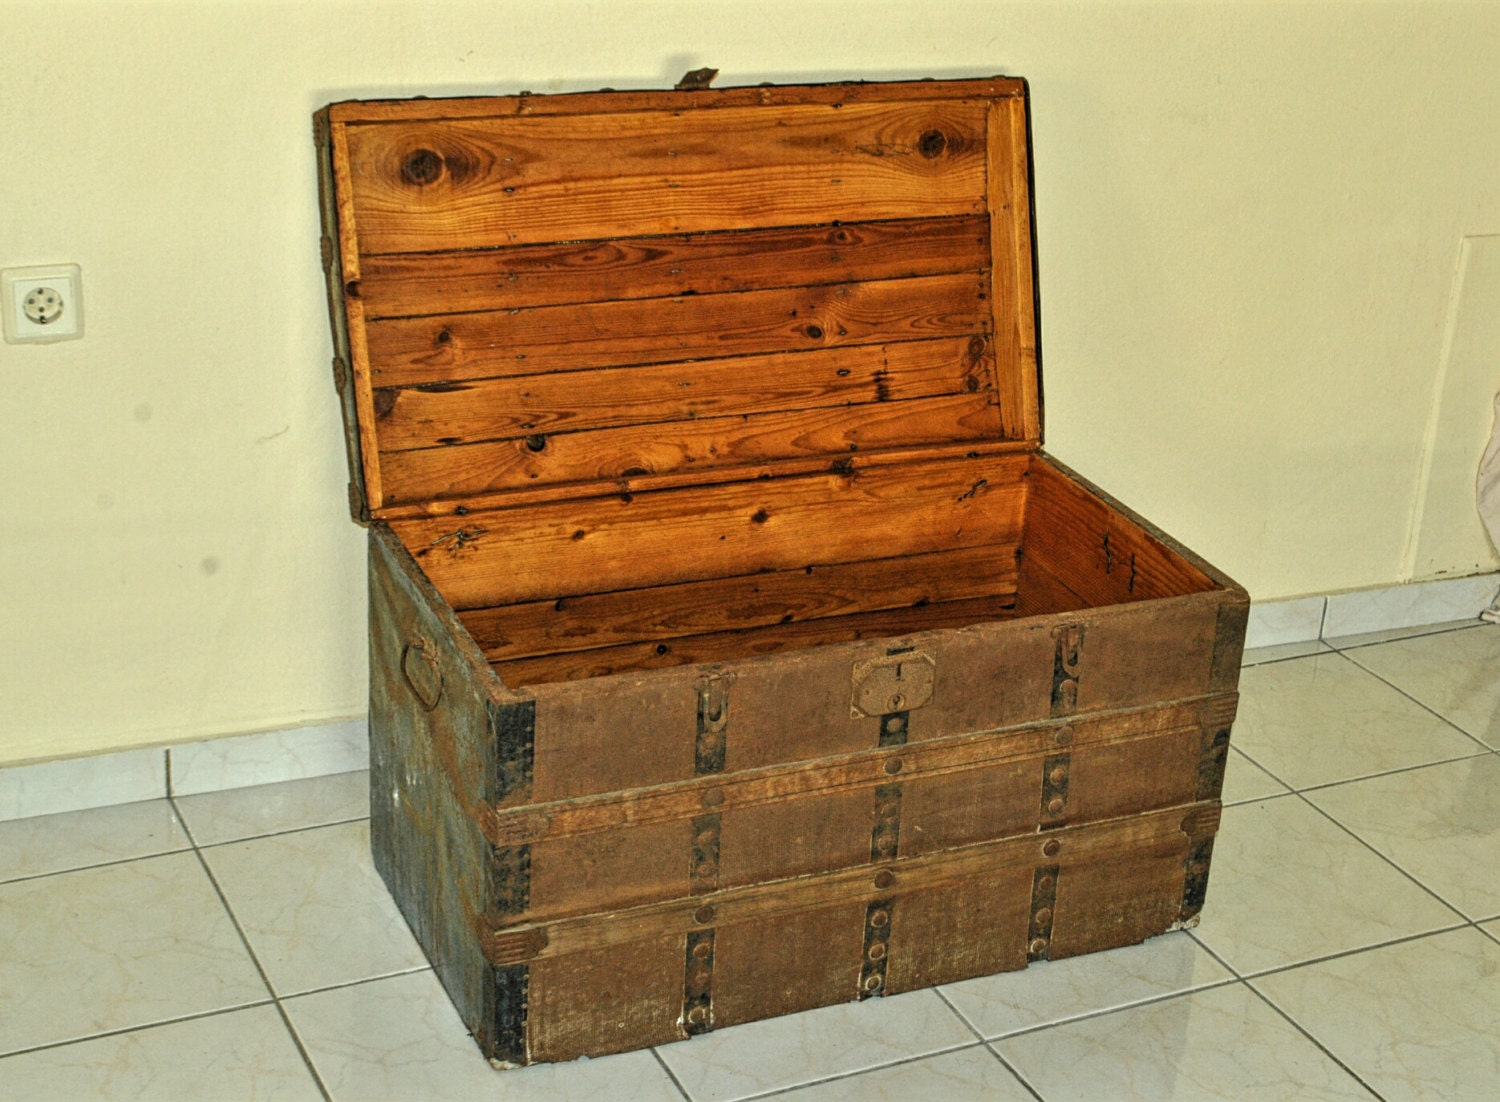 Large antique wooden chest treasure box